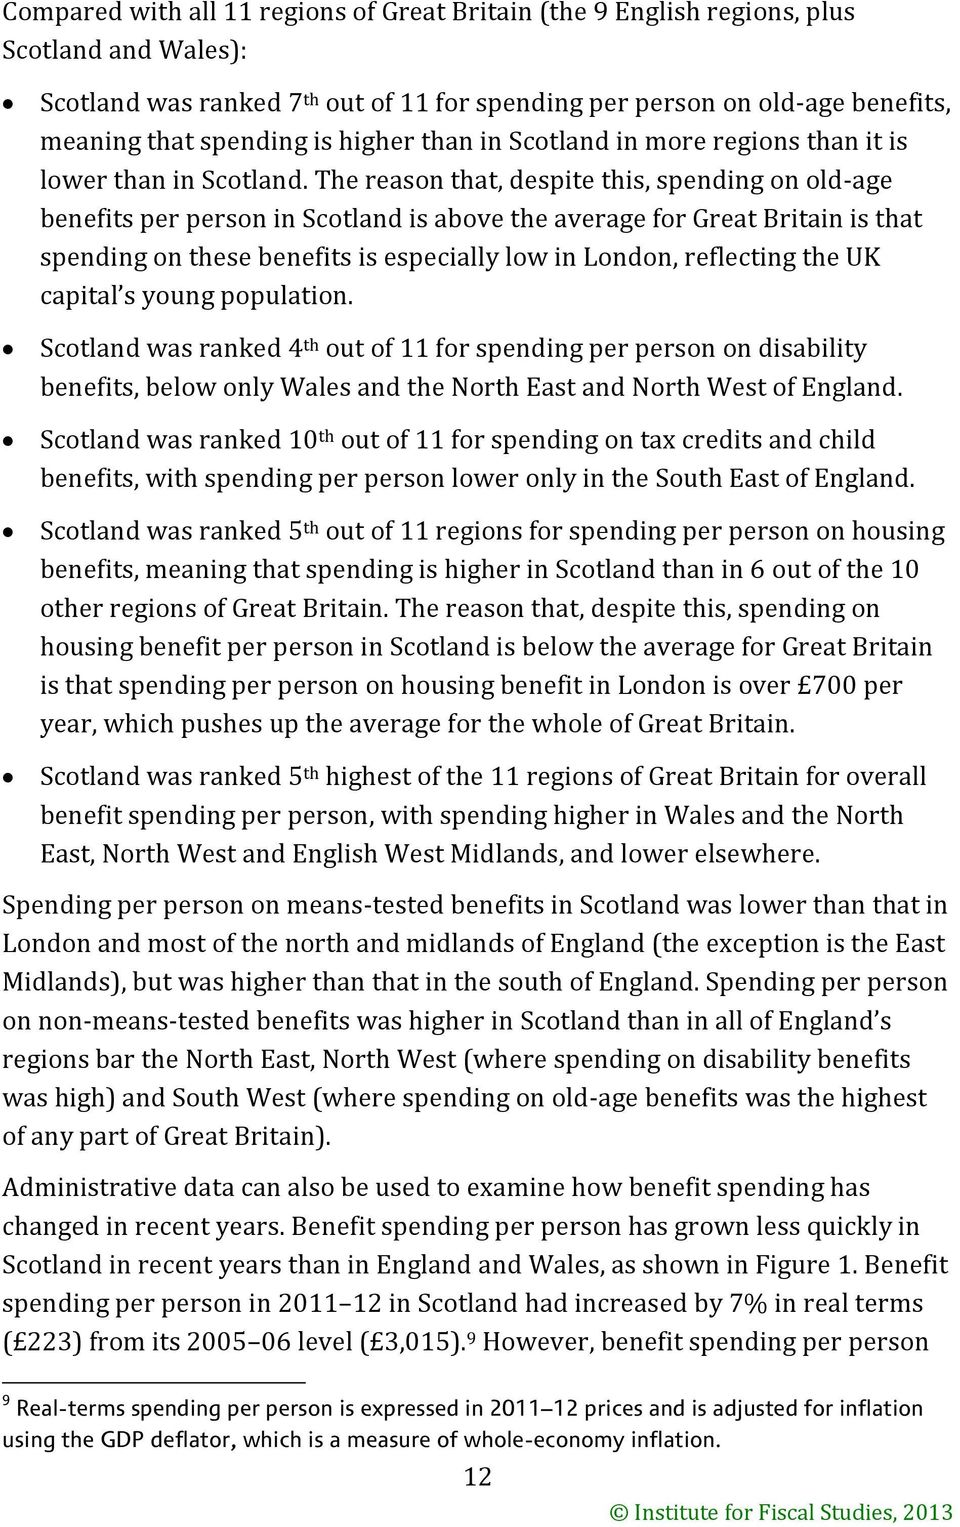 The reason that, despite this, spending on old-age benefits per person in Scotland is above the average for Great Britain is that spending on these benefits is especially low in London, reflecting